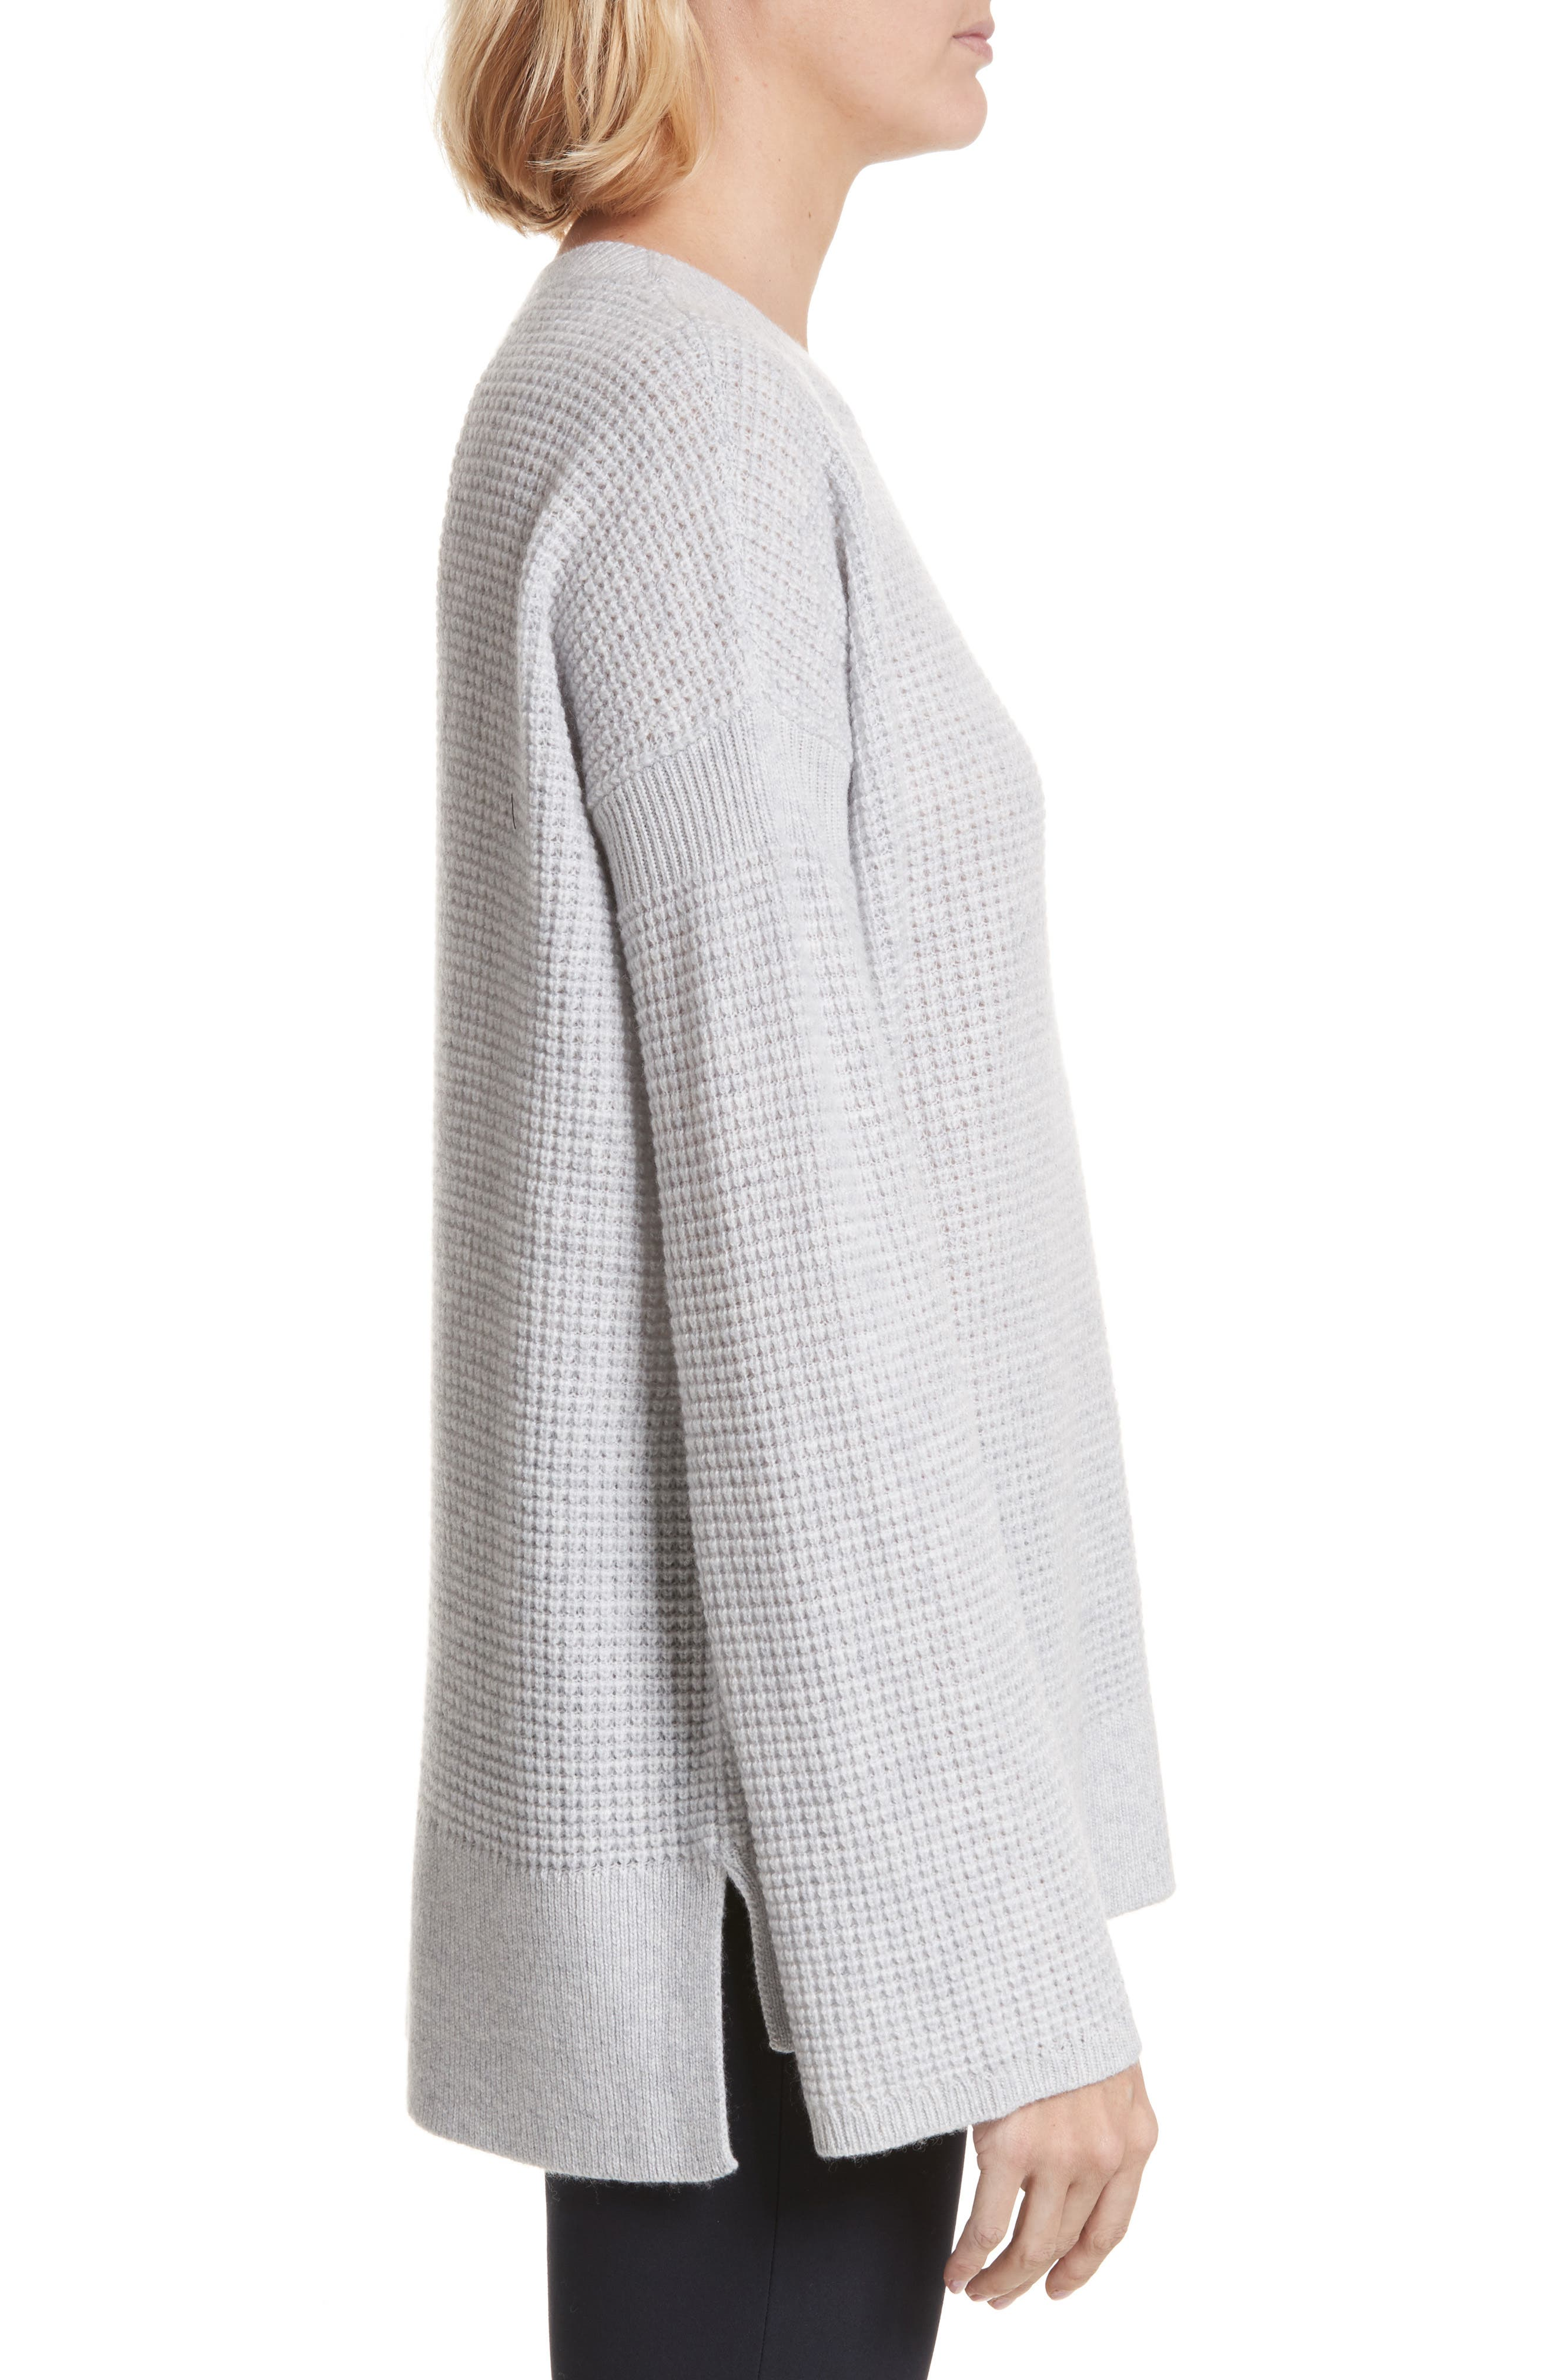 Cinch Sleeve Cashmere Sweater,                             Alternate thumbnail 3, color,                             090